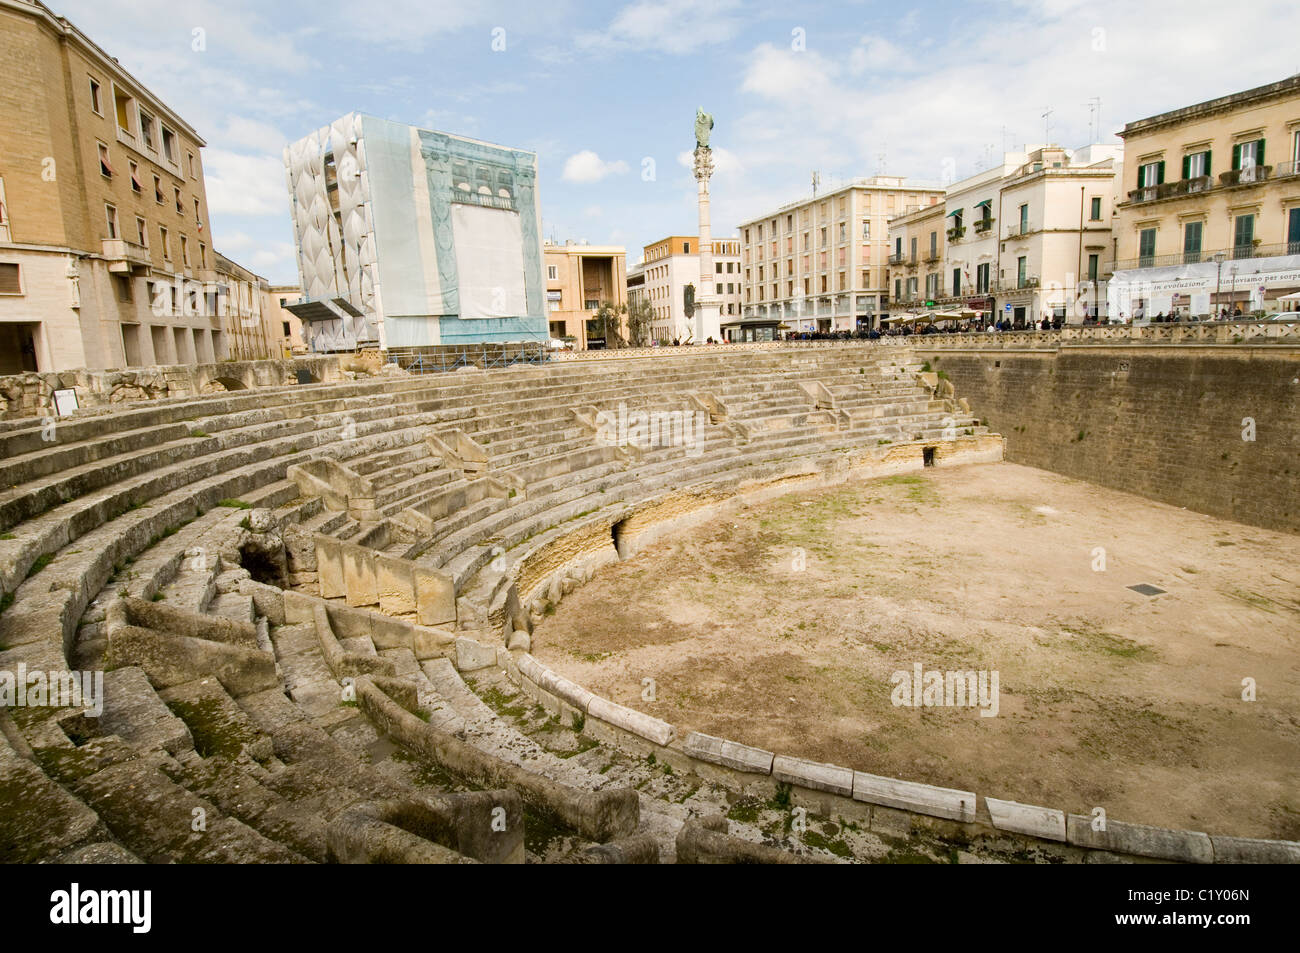 lecce amphitheatre southern italy city cites Piazza Sant Oronzo roman romans remains italian history historic sightseeing - Stock Image